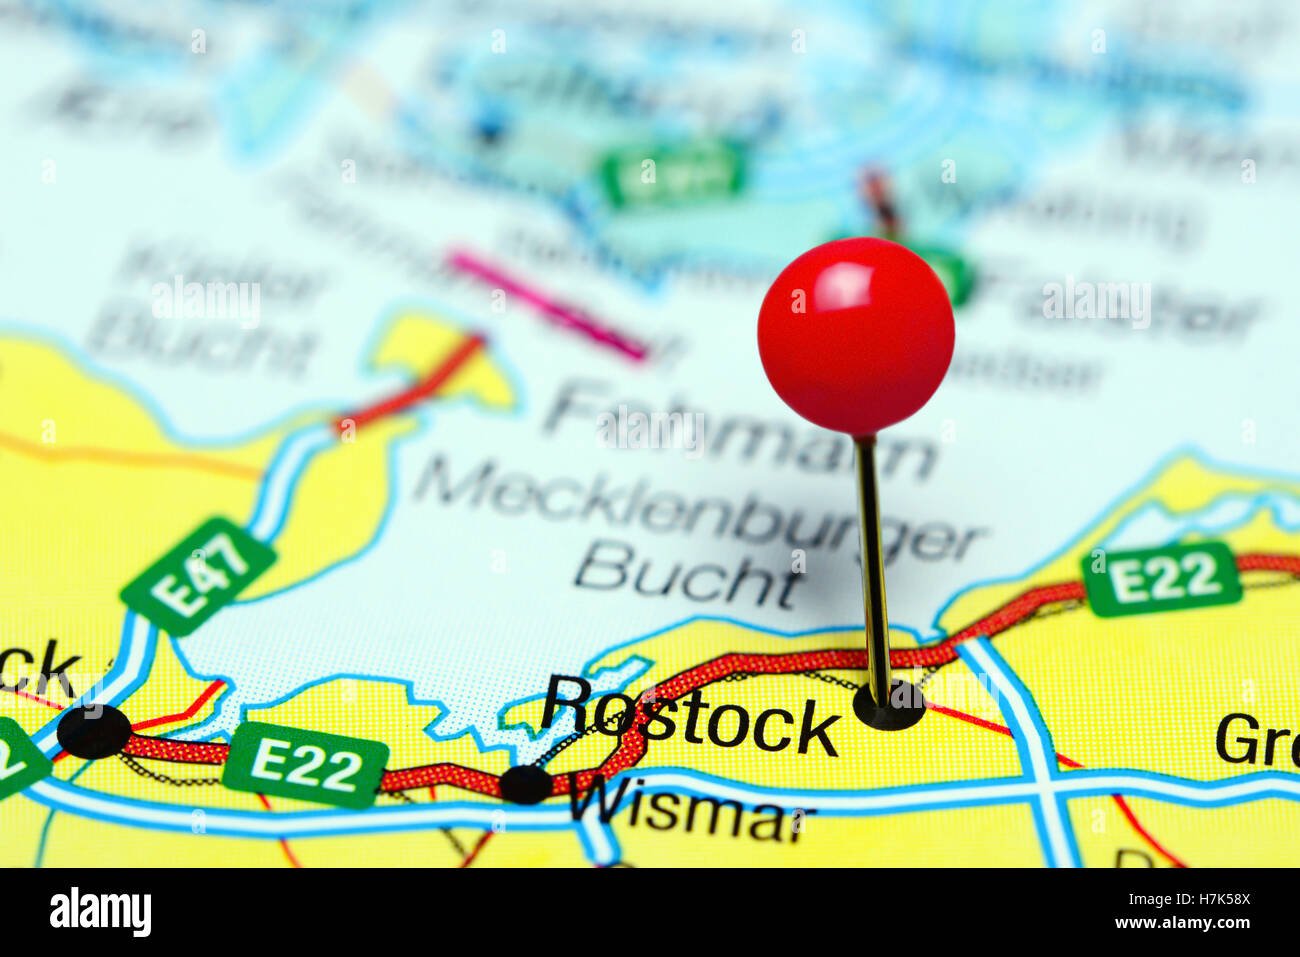 Rostock pinned on a map of Germany Stock Photo Royalty Free Image